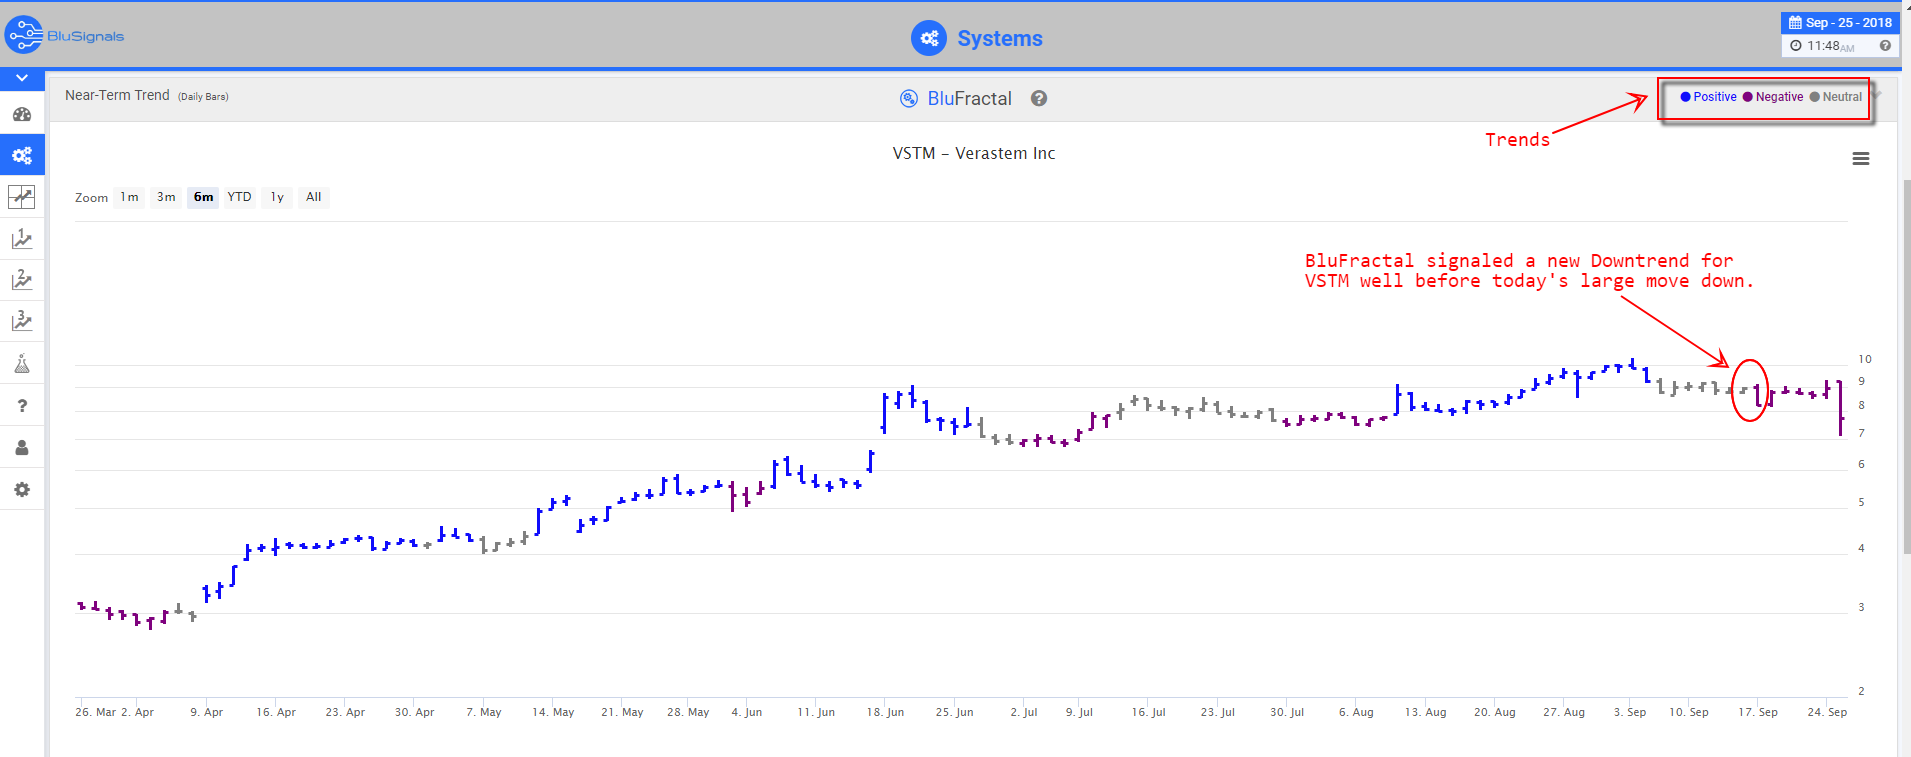 VSTM leading indicators